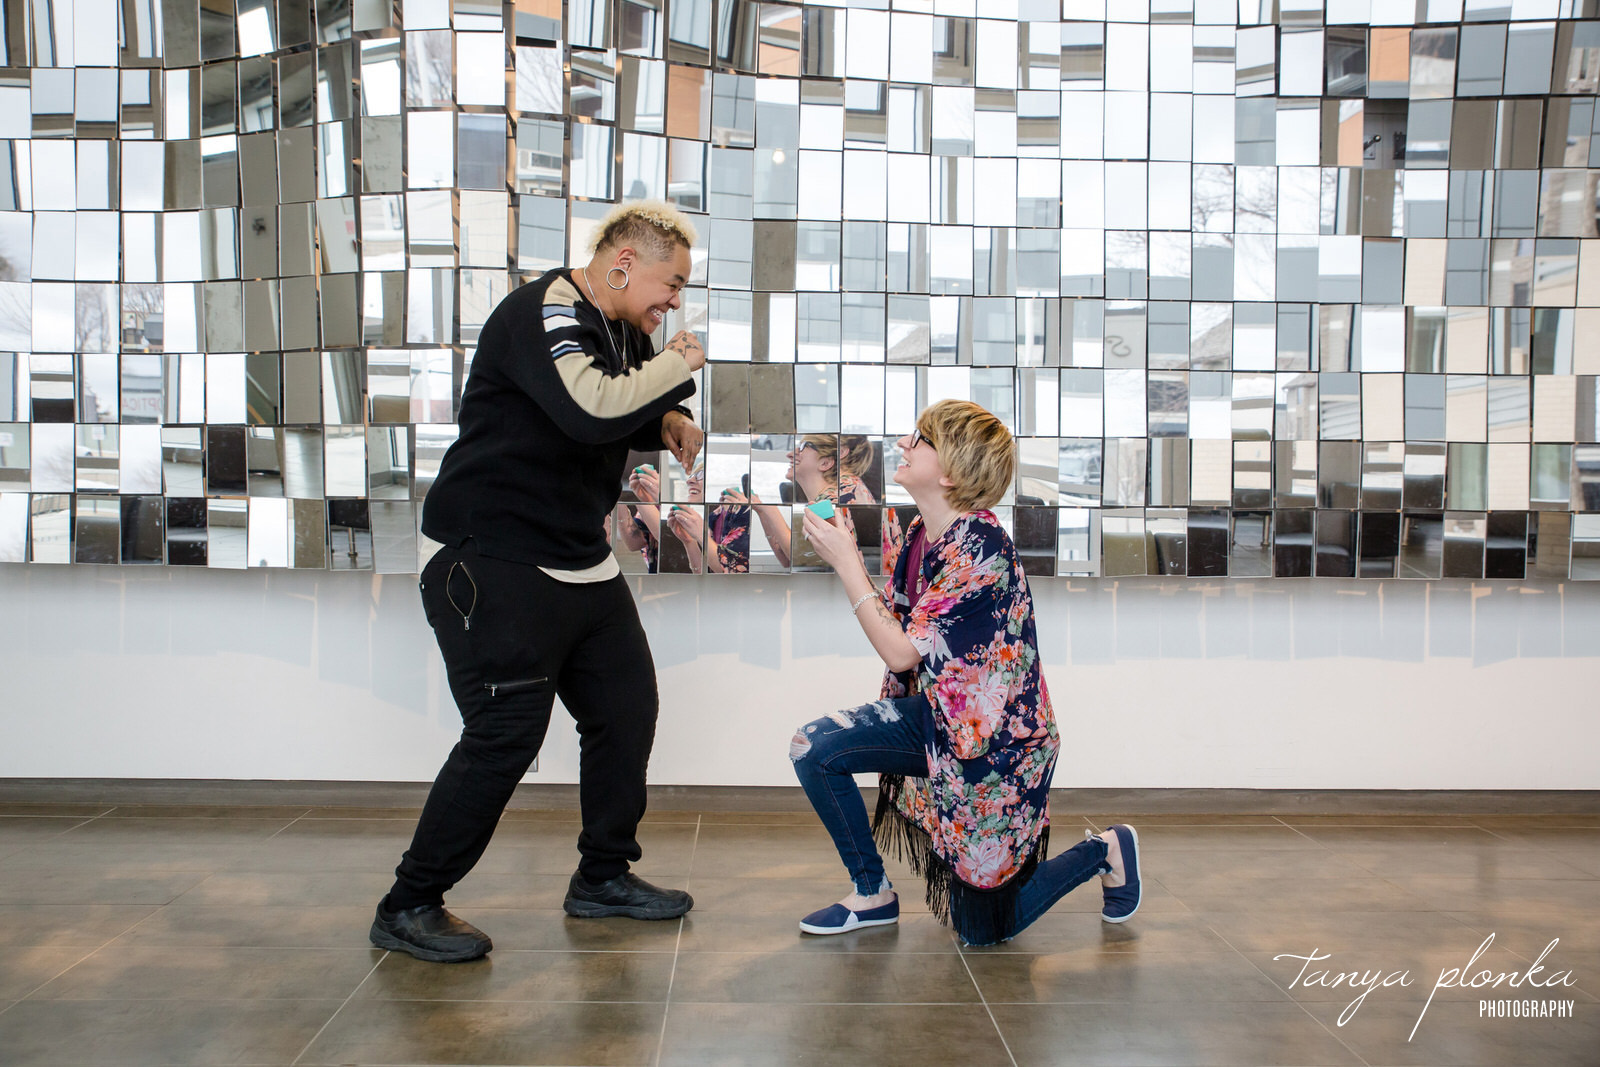 woman proposes to her girlfriend in front of mirror art installation at Casa in Lethbridge